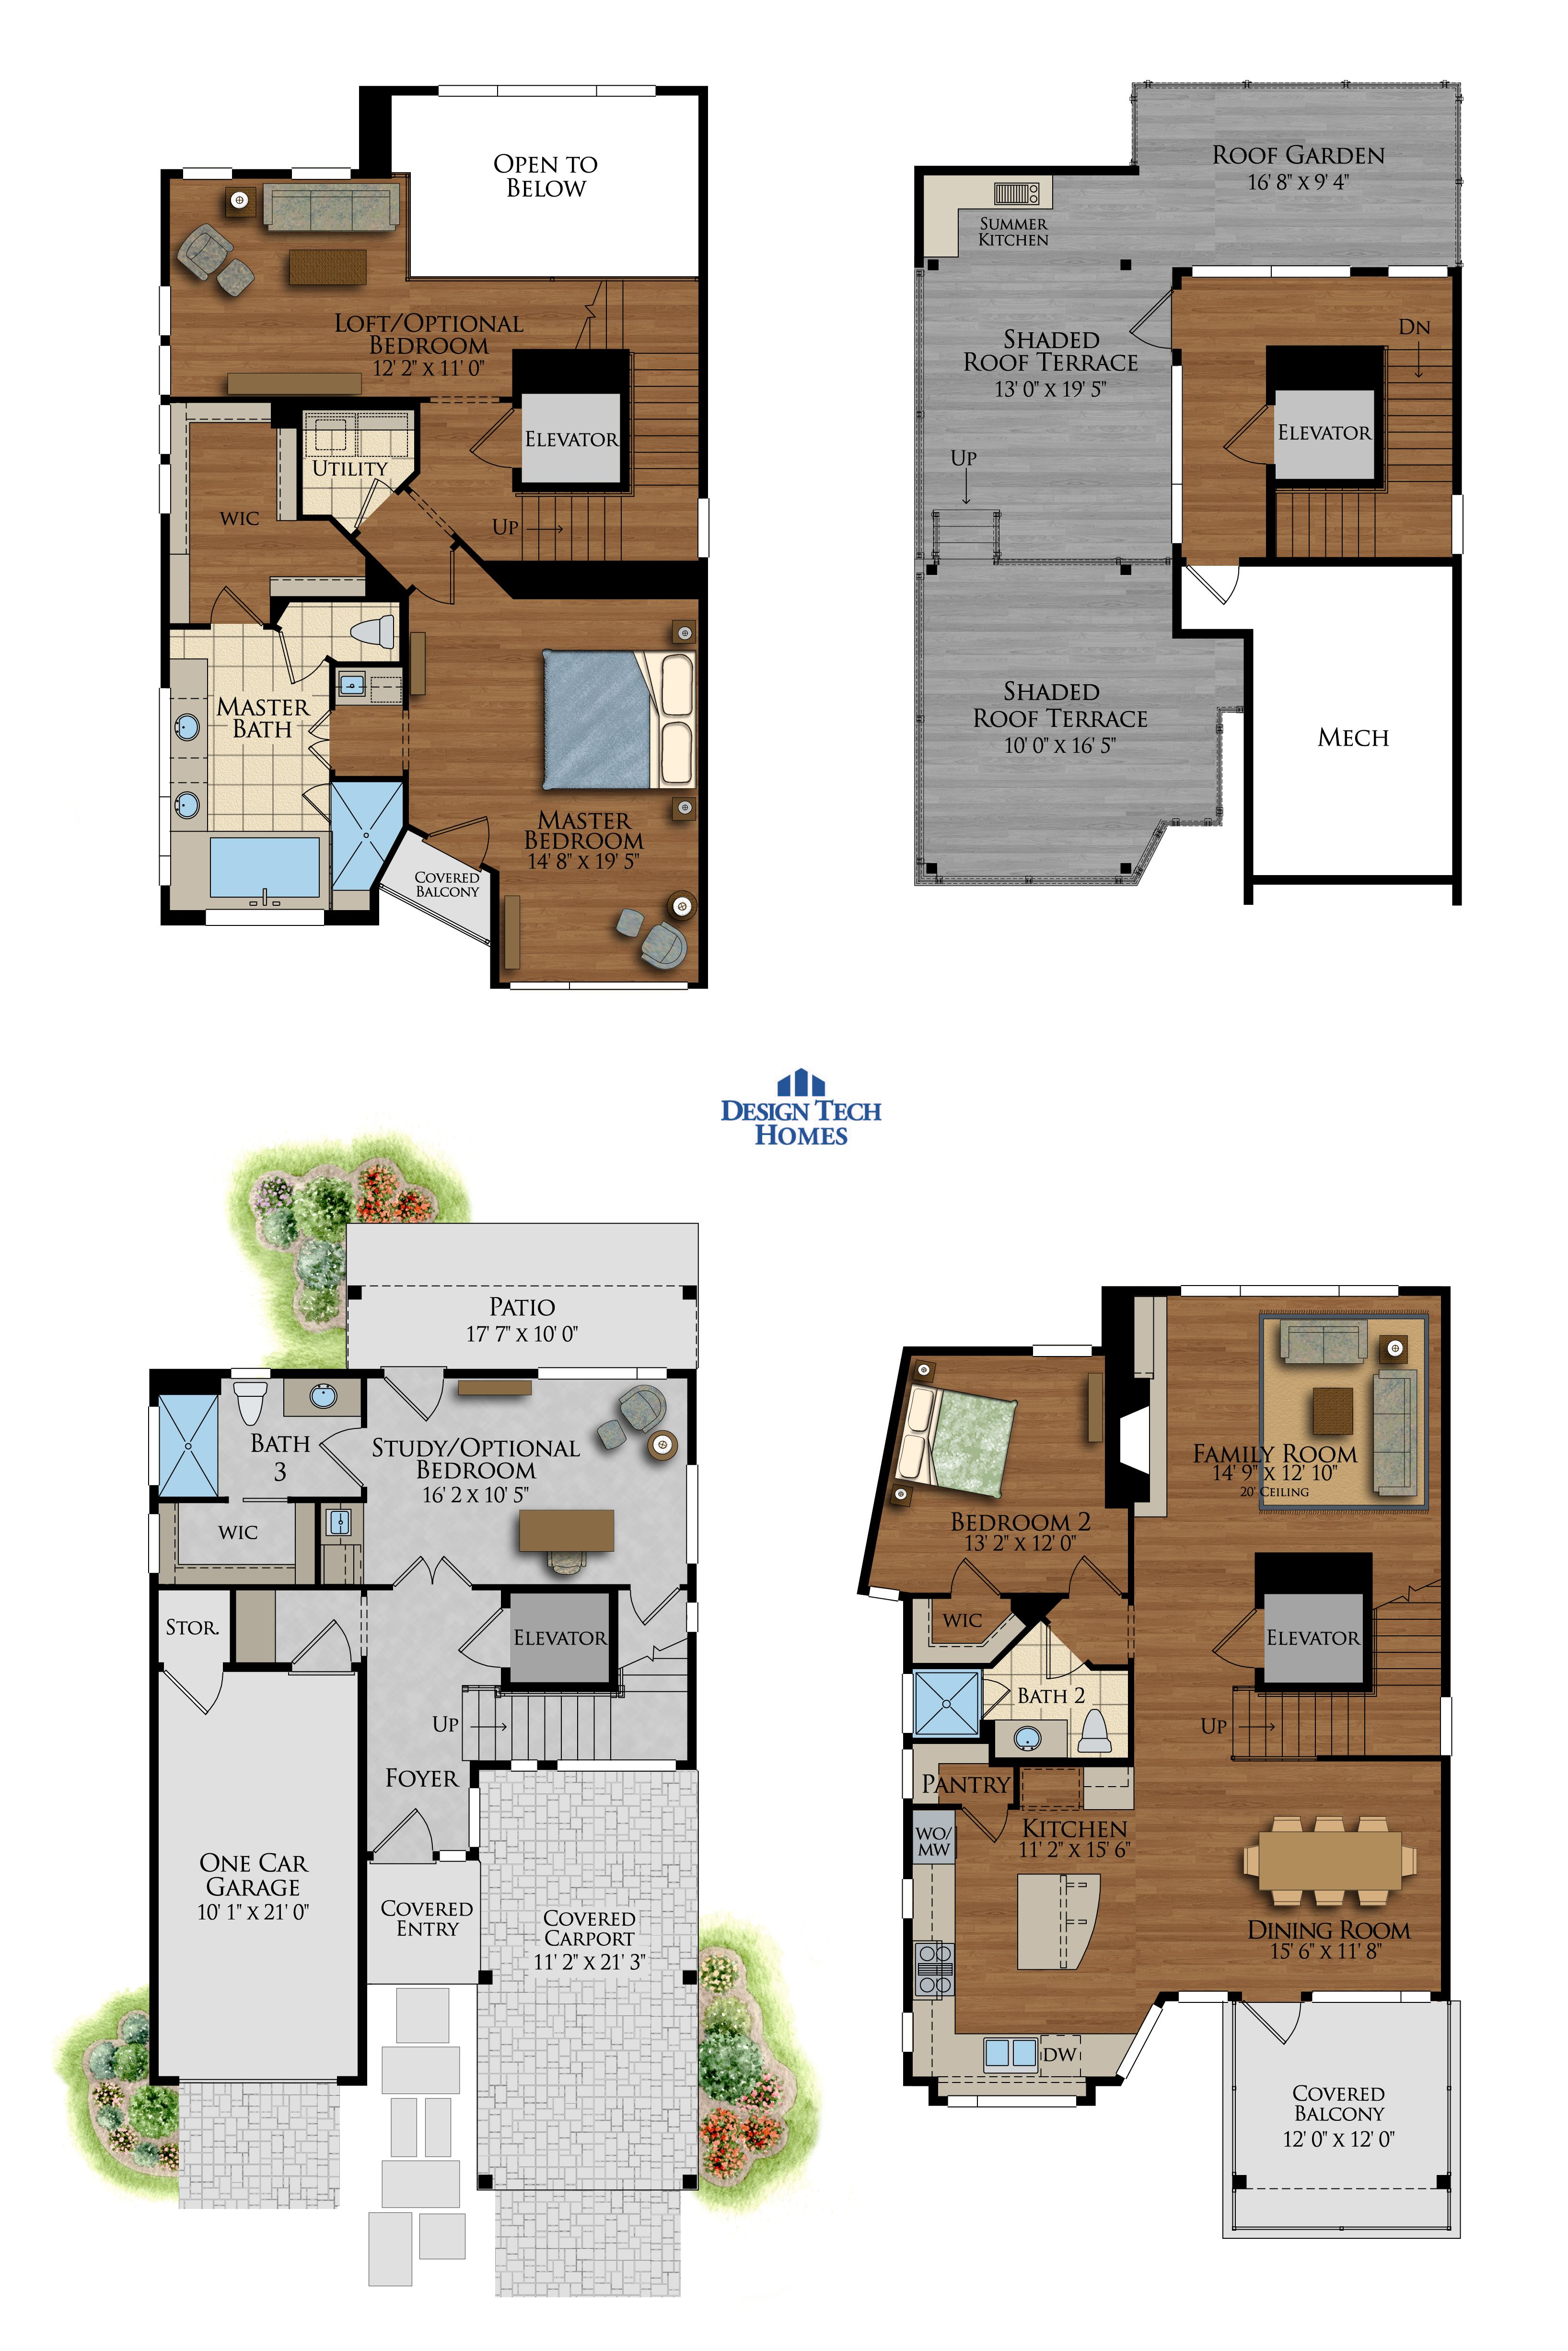 2,553 Sq Ft House Plan - 3 Bed 3 Bath, 4 Story - The Midtown ...